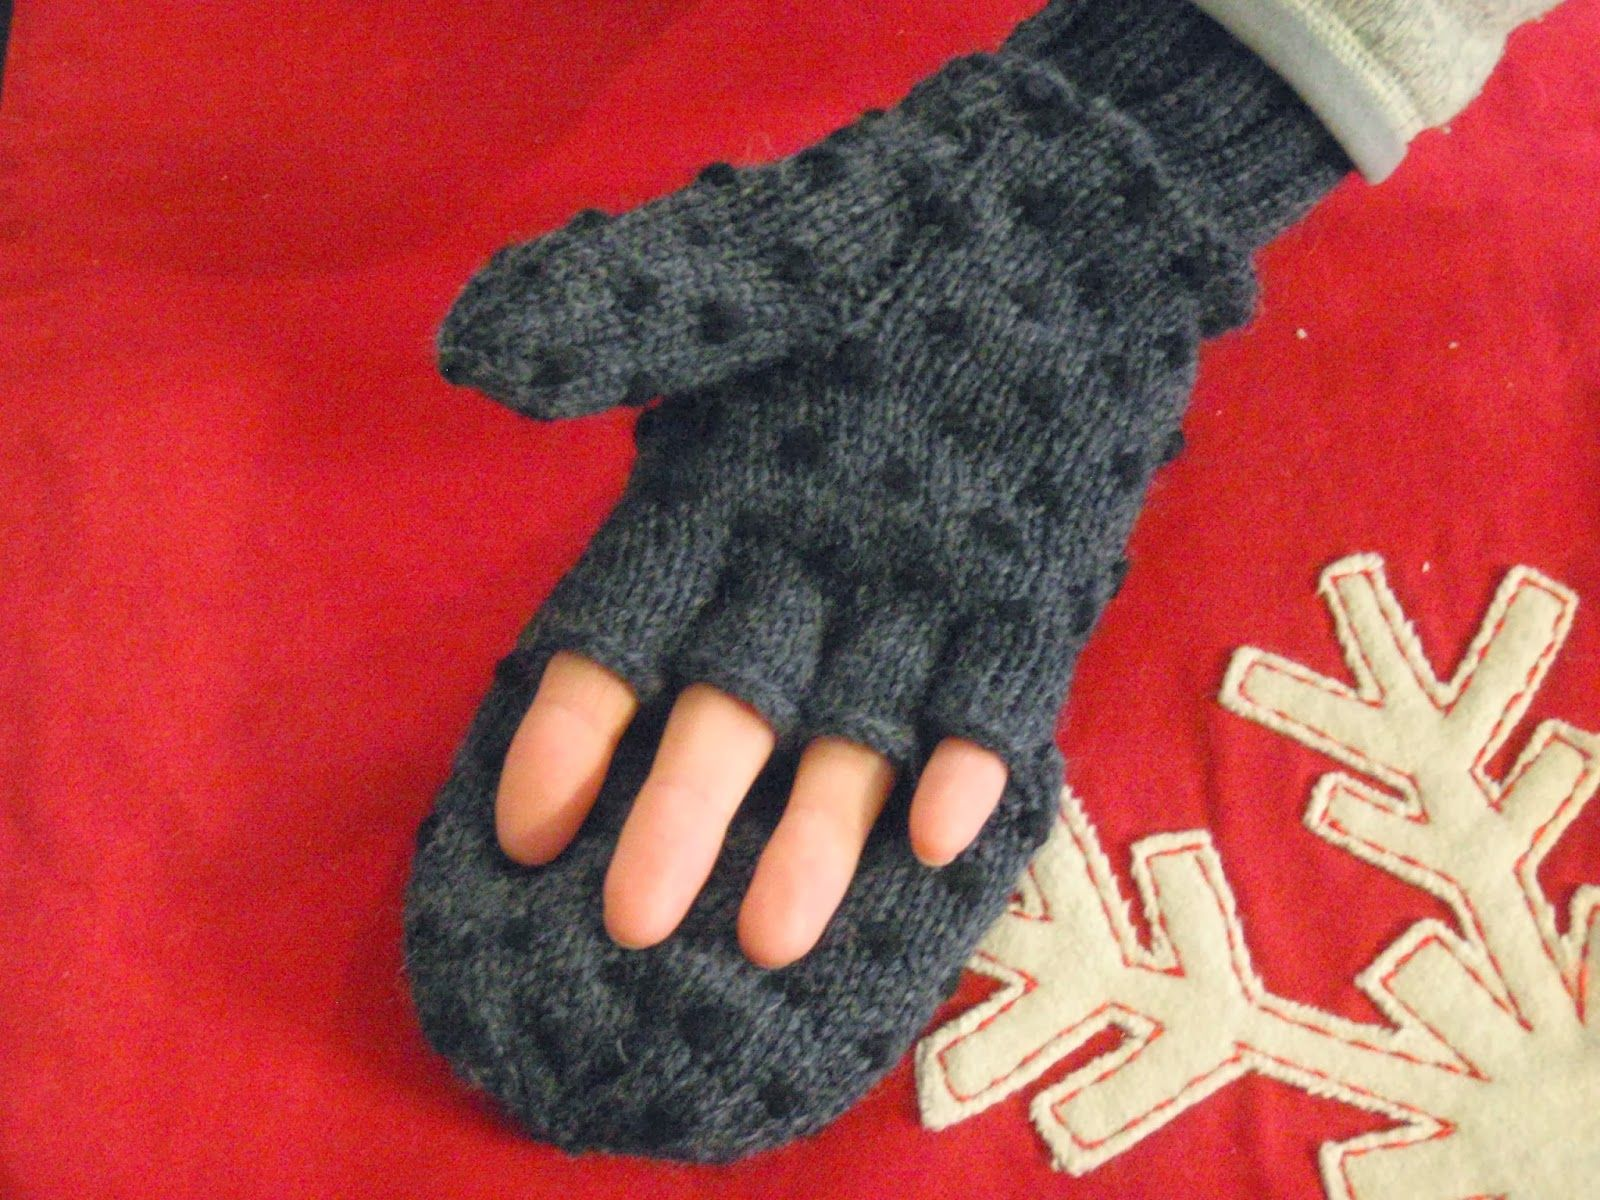 This is a pattern autumn hill llamas fiber knitting pattern 4 convertible thrummed mittens free knitting pattern good idea would be super warm and functional bankloansurffo Images